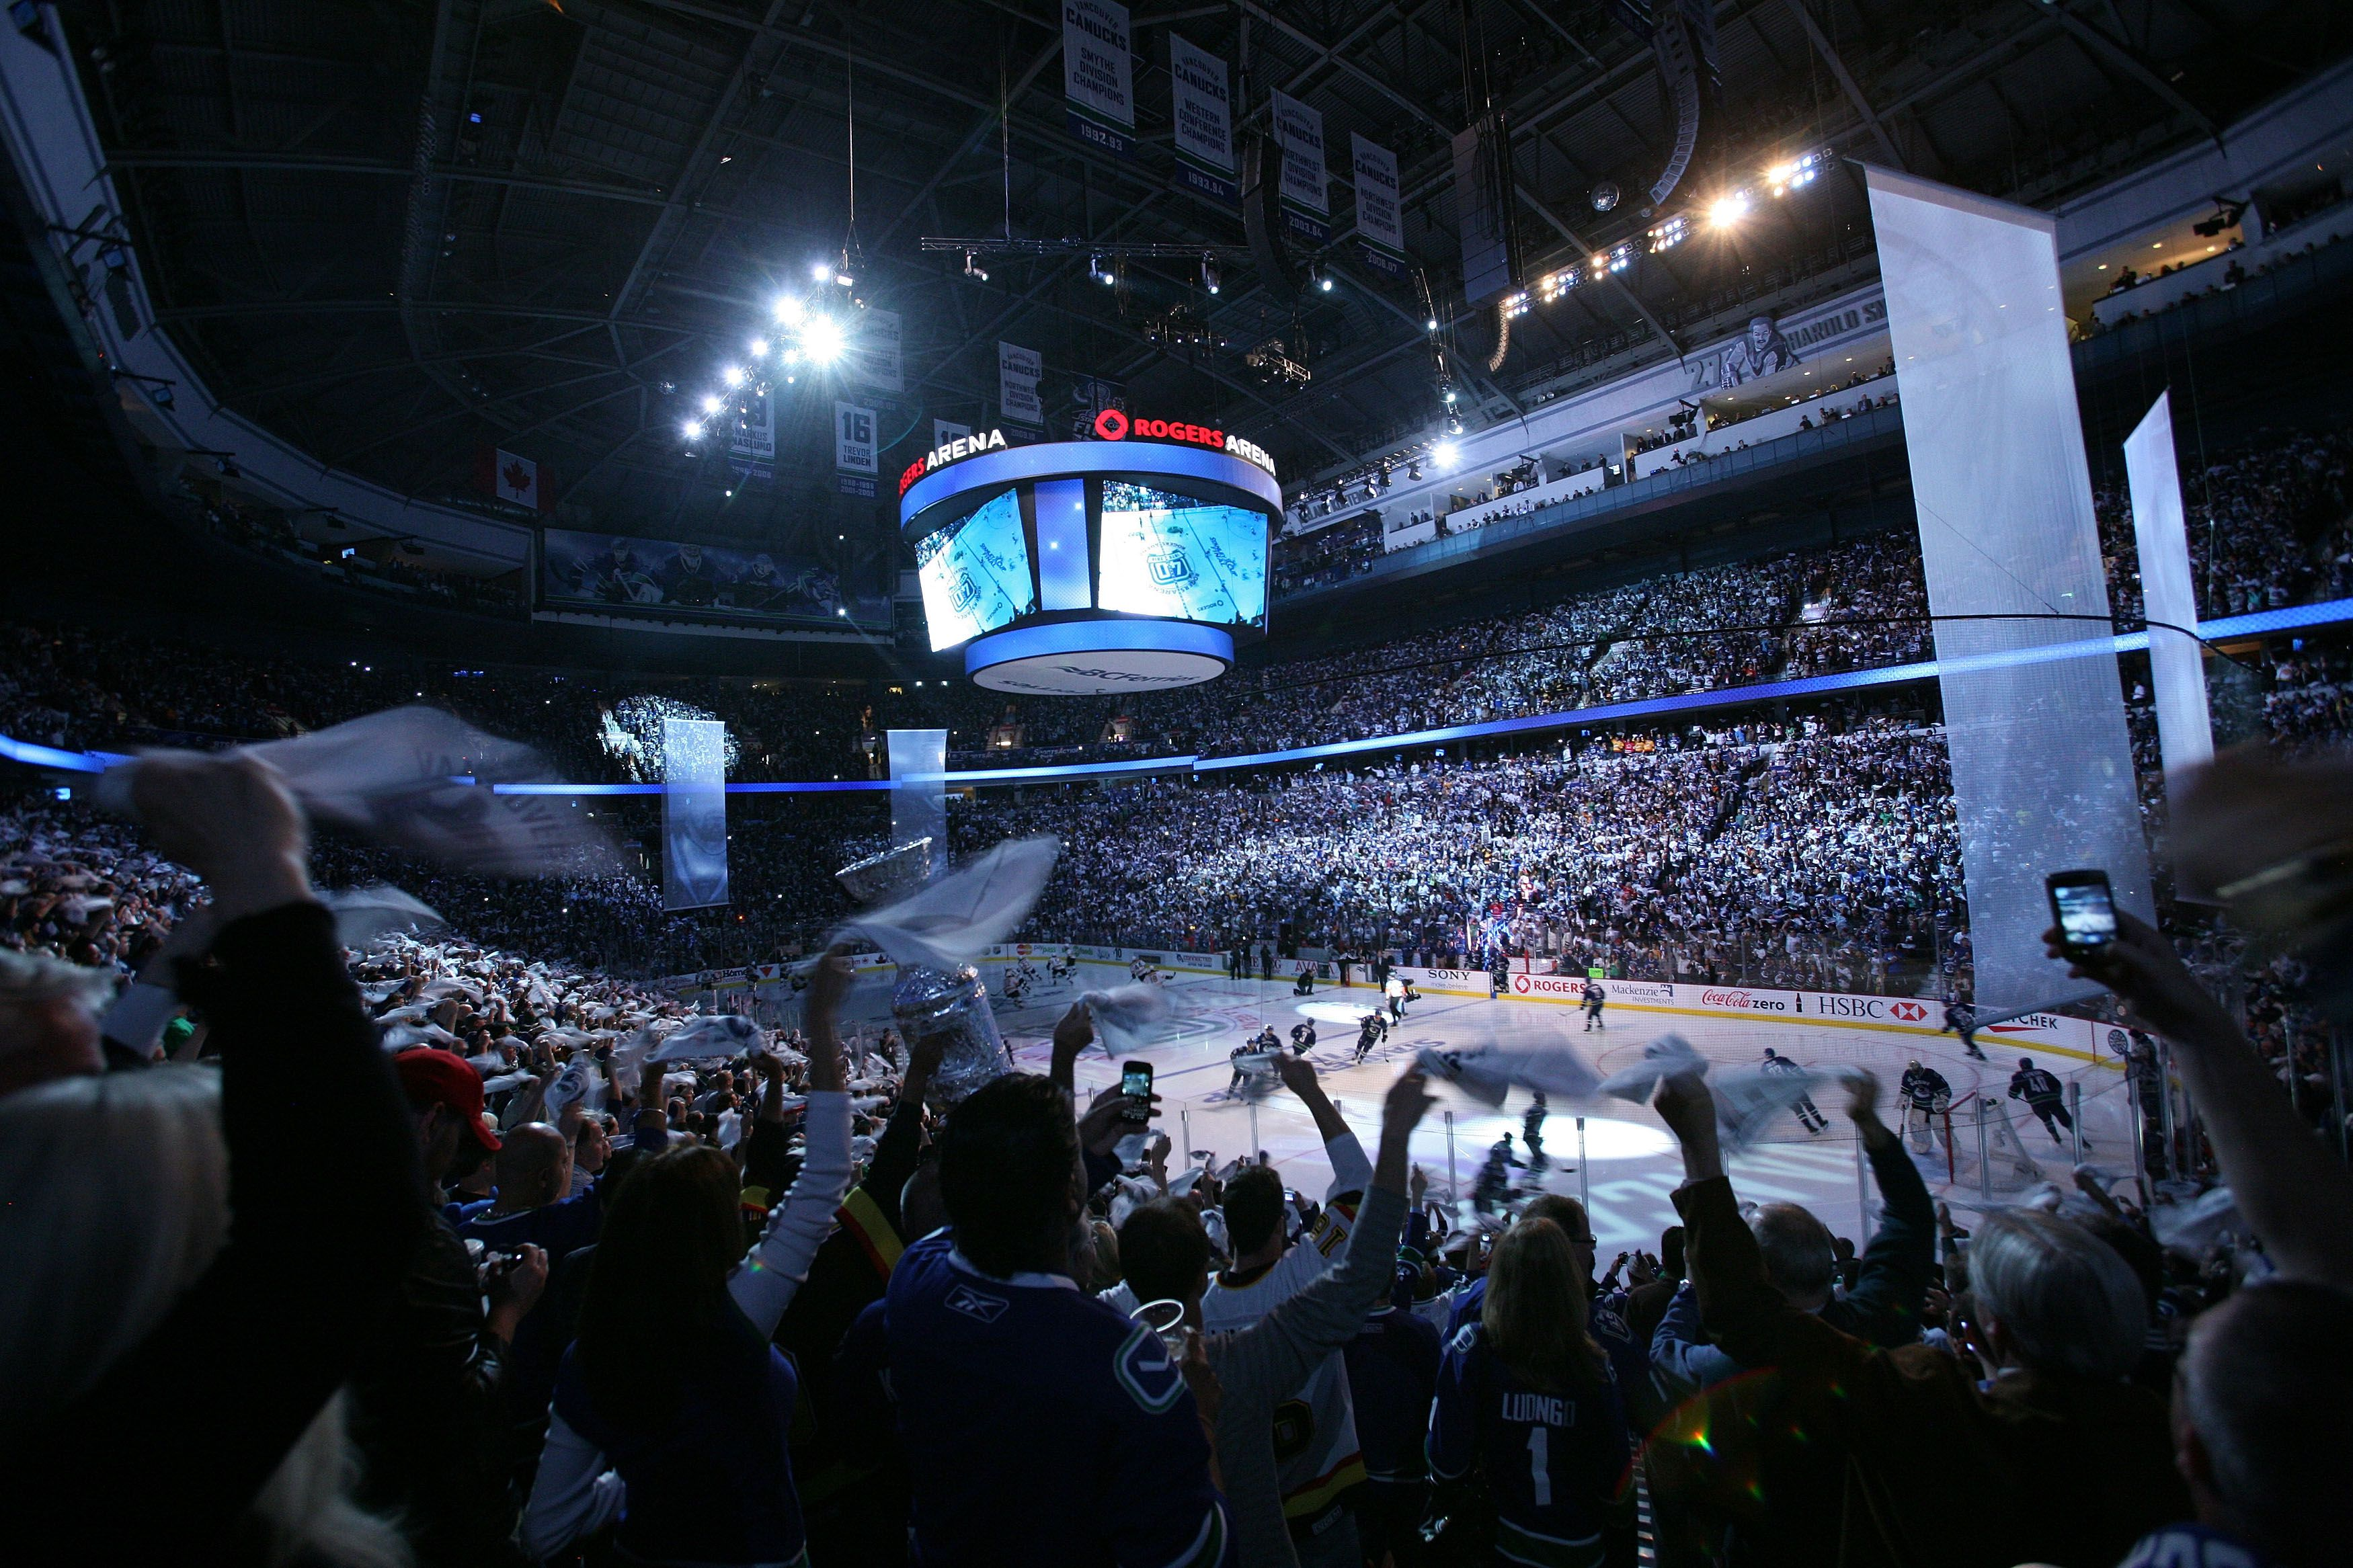 Fans cheering on the Canucks inside Rogers Arena in Vancouver